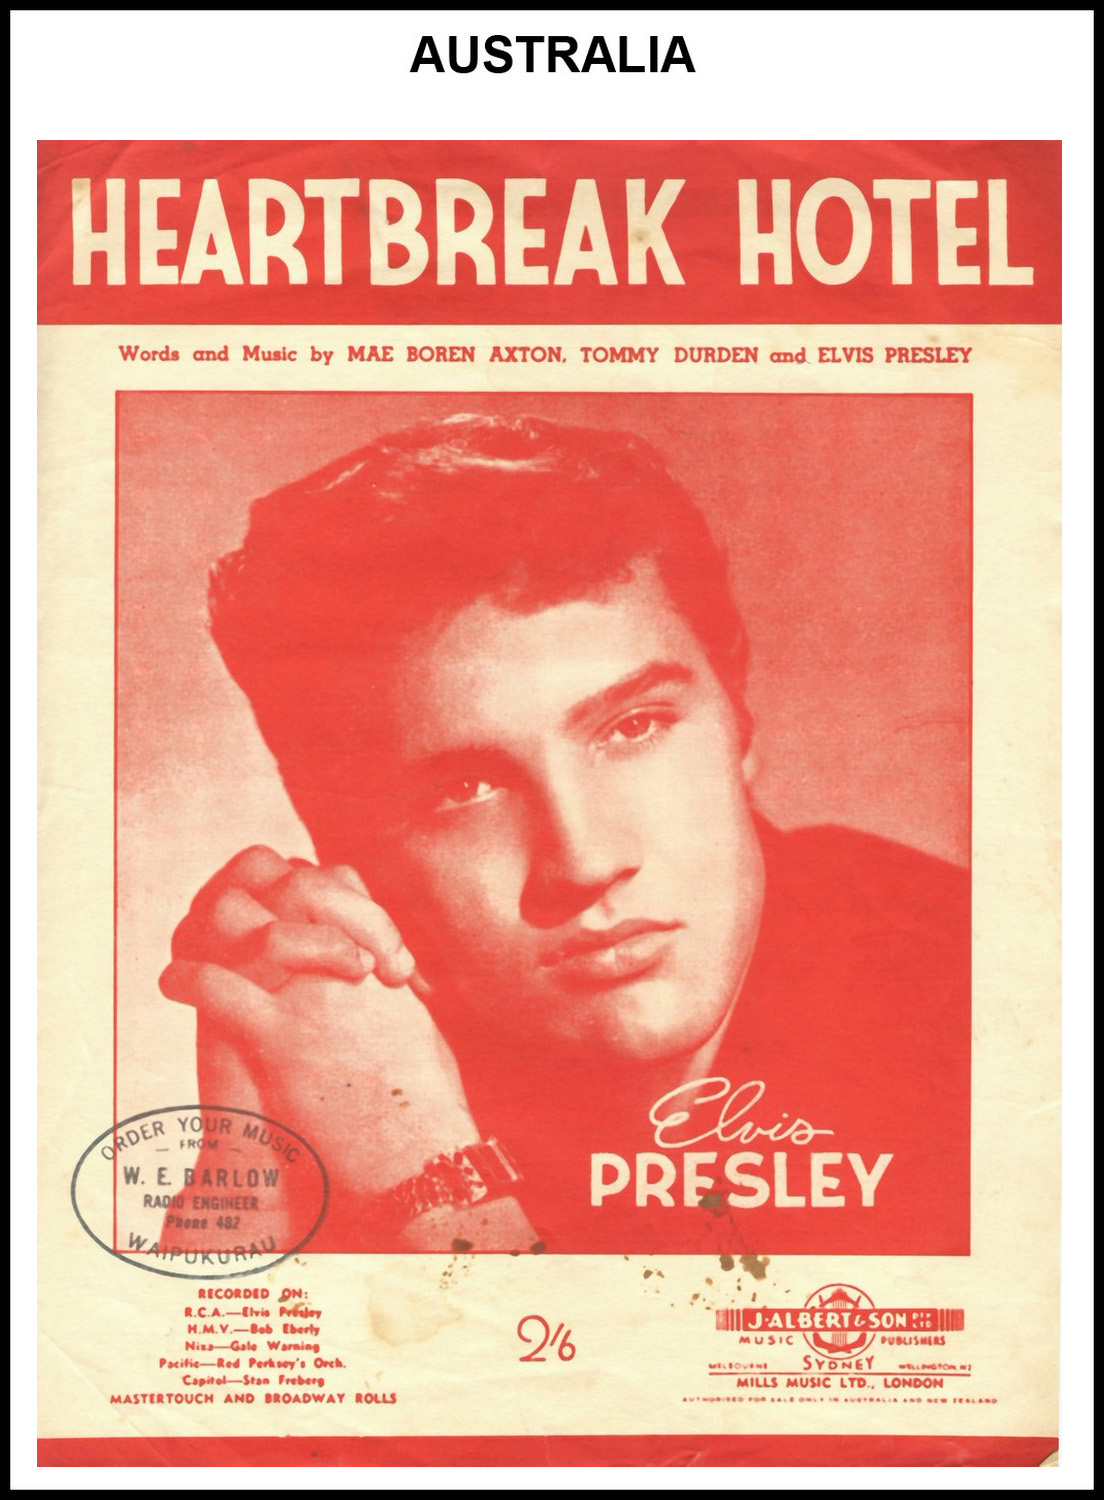 1956 - Heartbreak Hotel (Australia) (CHRIS GILES COLLECTION)